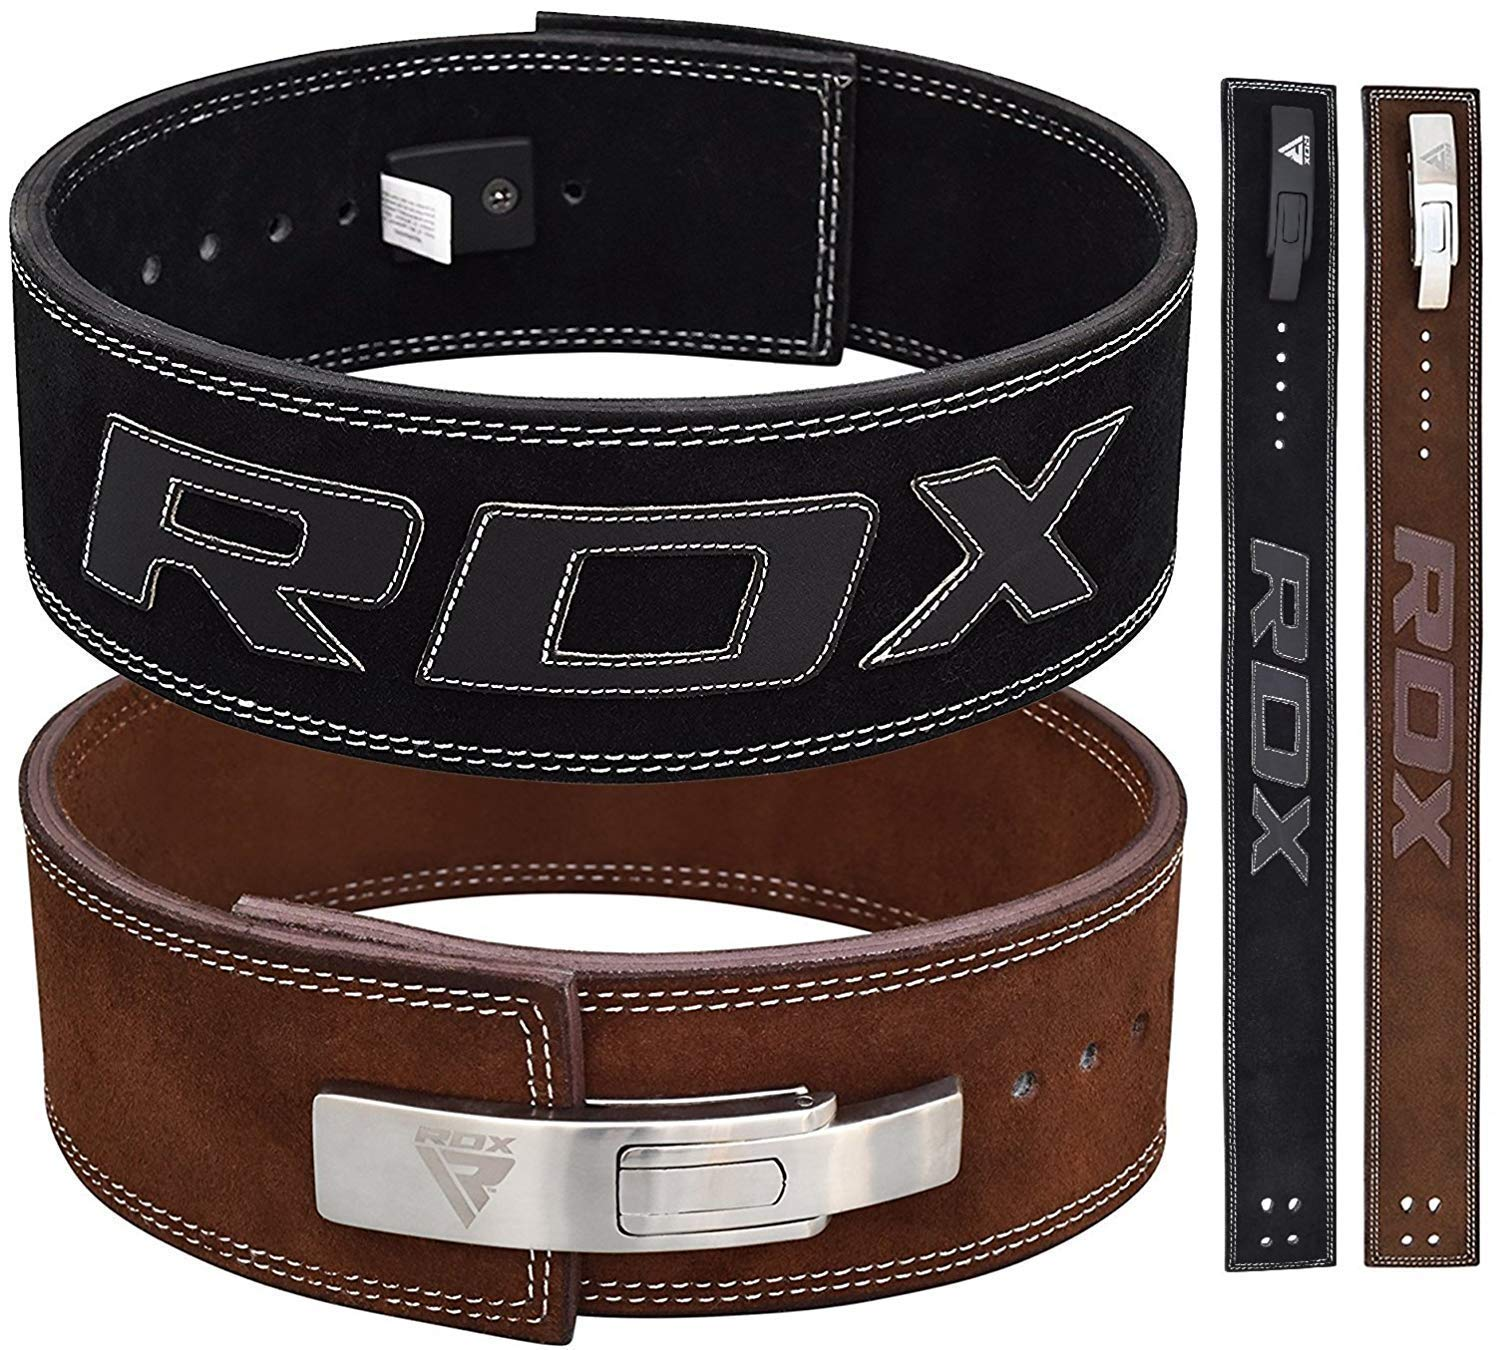 RDX Power-lifting Belt.